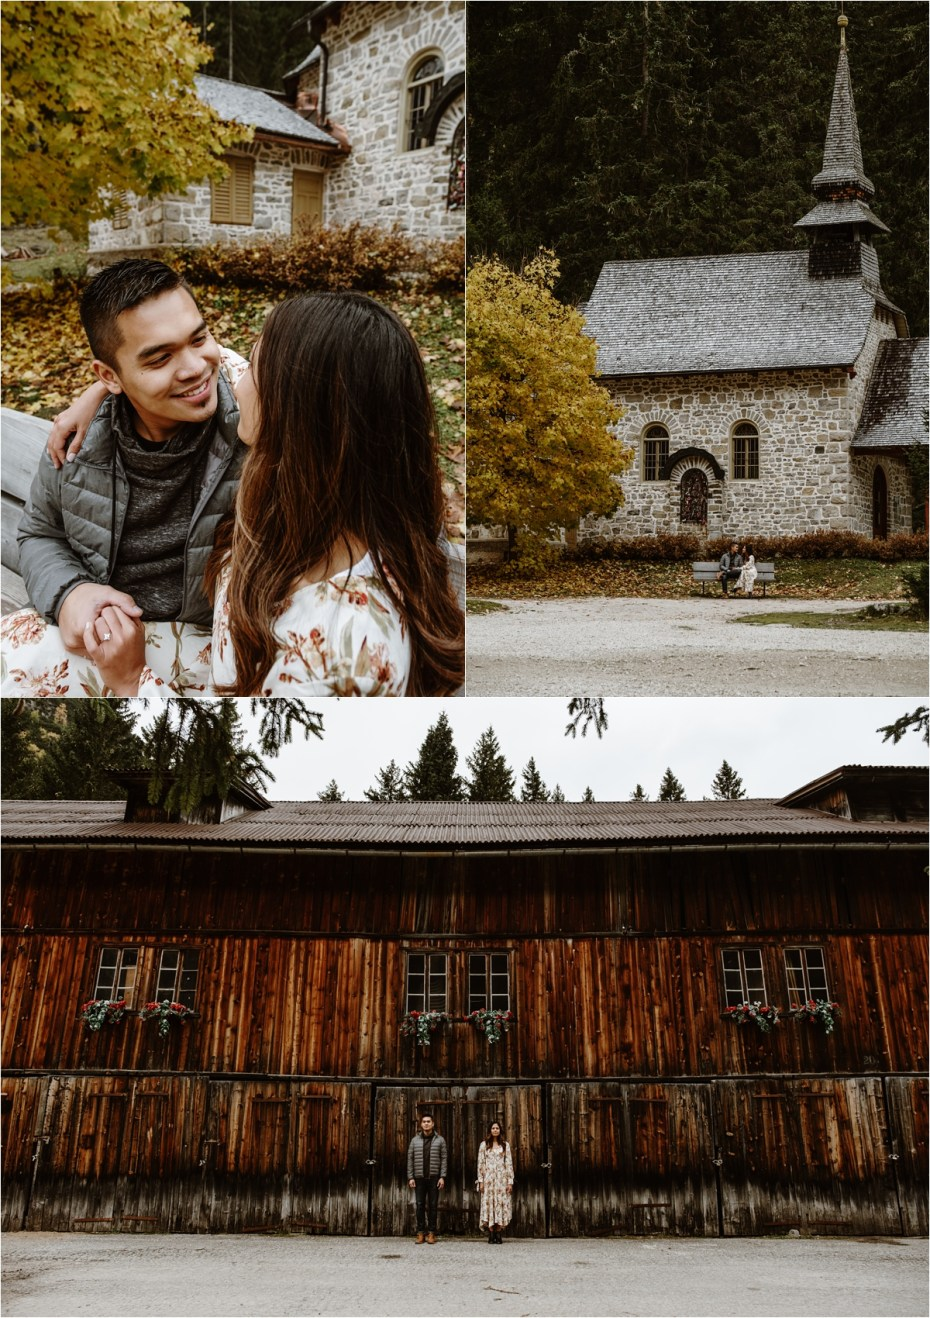 Engagement photos at Pragser Wildsee. Photos by Wild Connections Photography.